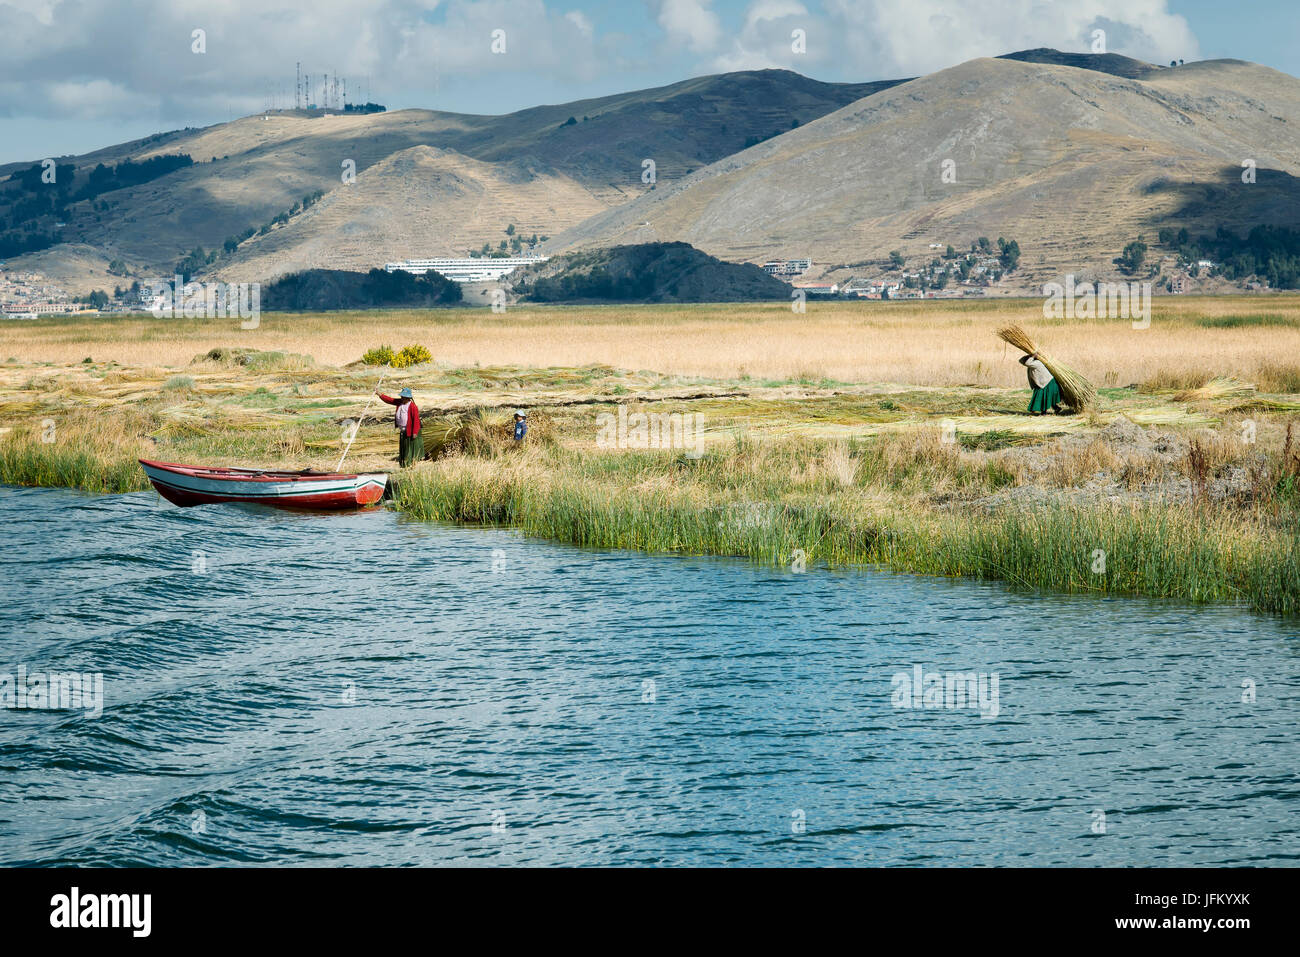 Aymara family collect reed for building Uros floating islands, Titicaca lake, Peru - Stock Image